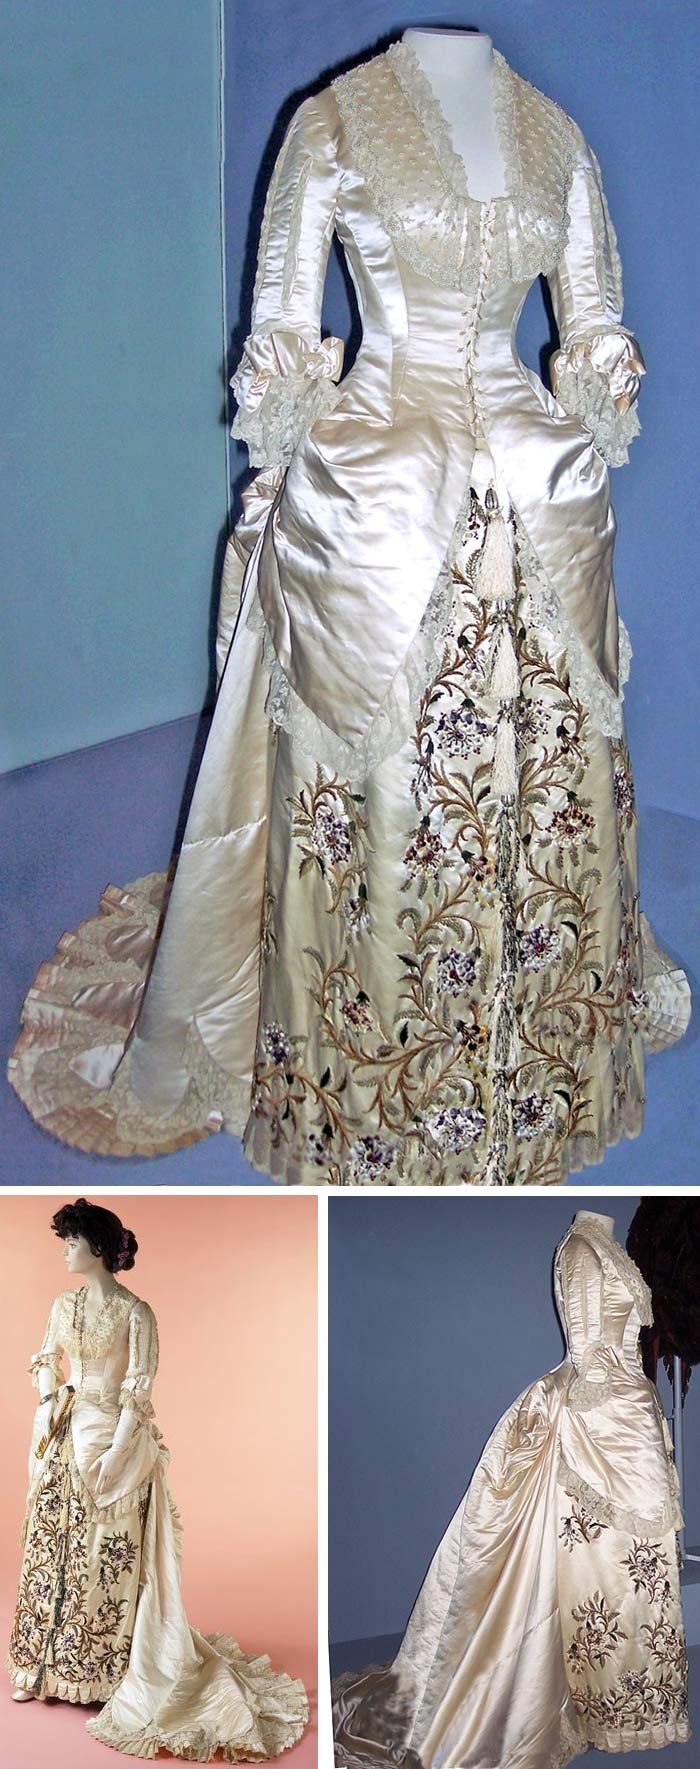 Evening dress, Worth, ca. 1881. Pale pink silk satin, Princess-lined, with pearl embroidery & machine-made lace. Boned bodice is seamed & gored for a molded fit. It extends into drapes at the hips & merges with train, which falls in inverted pleats from bodice seams. Skirt hooped at inside back, with tapes for adjustment, to create bustle effect. Elbow-length sleeves slightly puffed; slits filled with cream machine-made lace. Victoria & Albert Museum and National Education Network